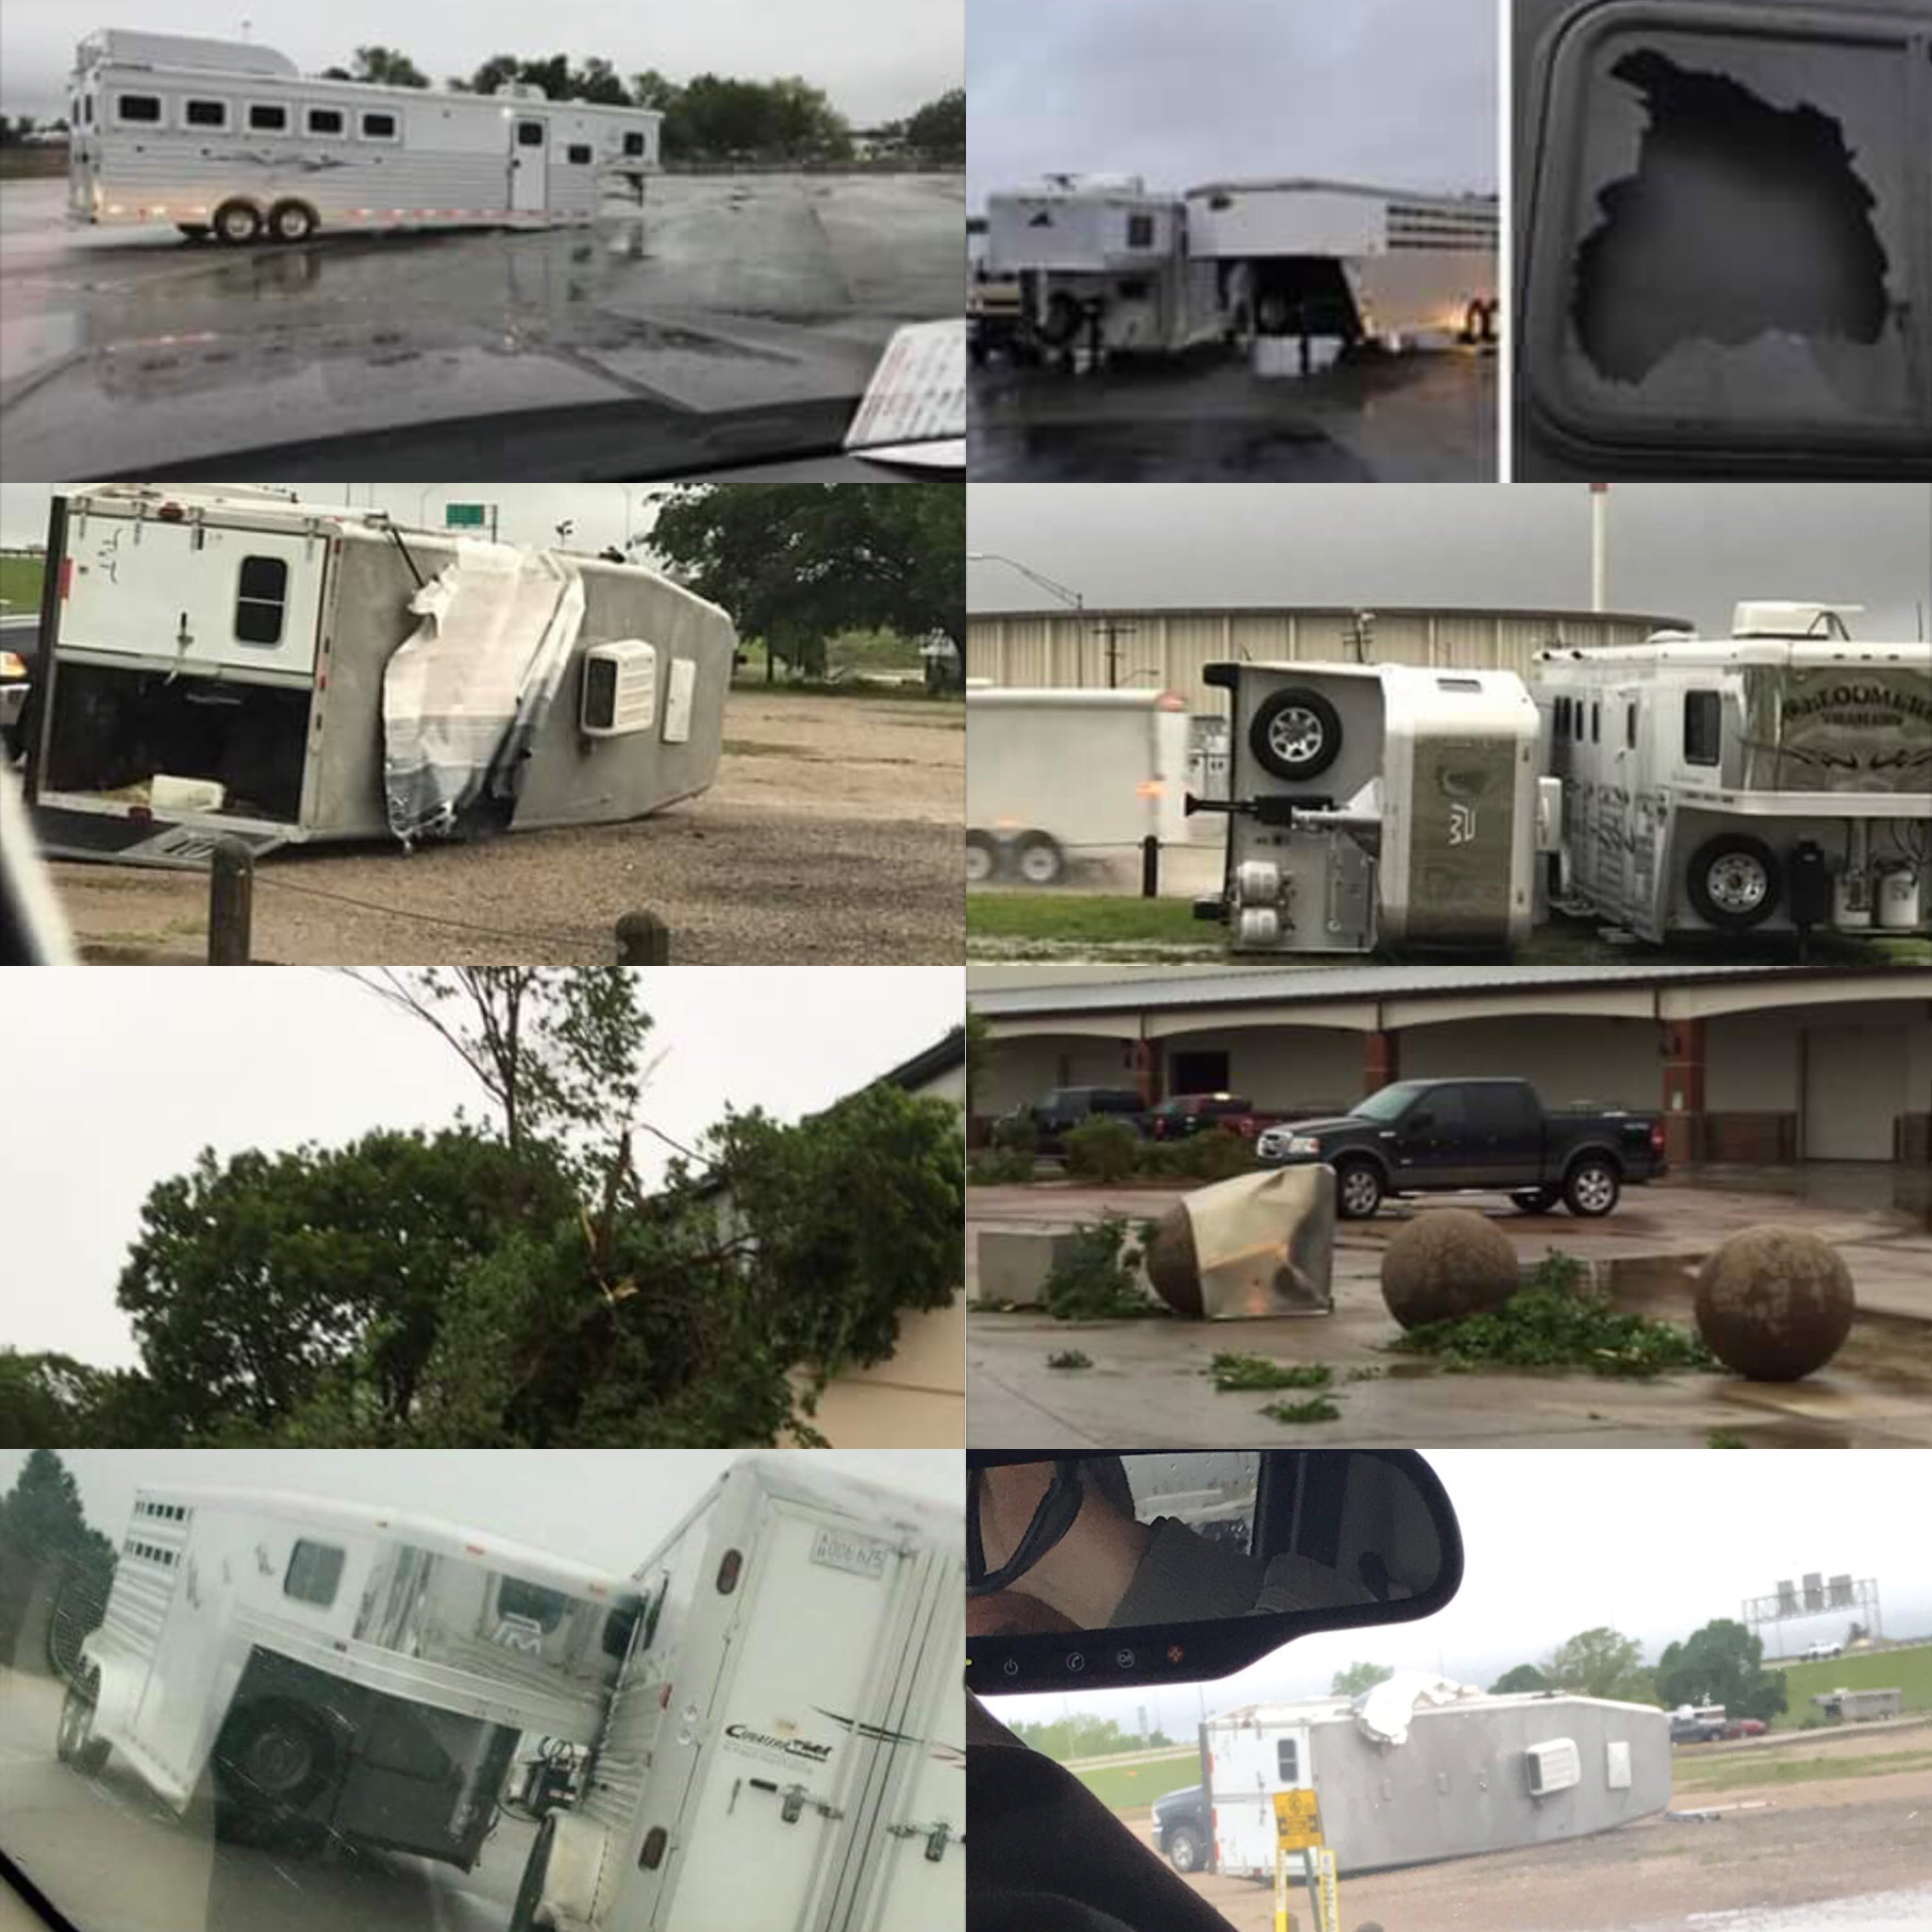 Horse Trailers in a storm